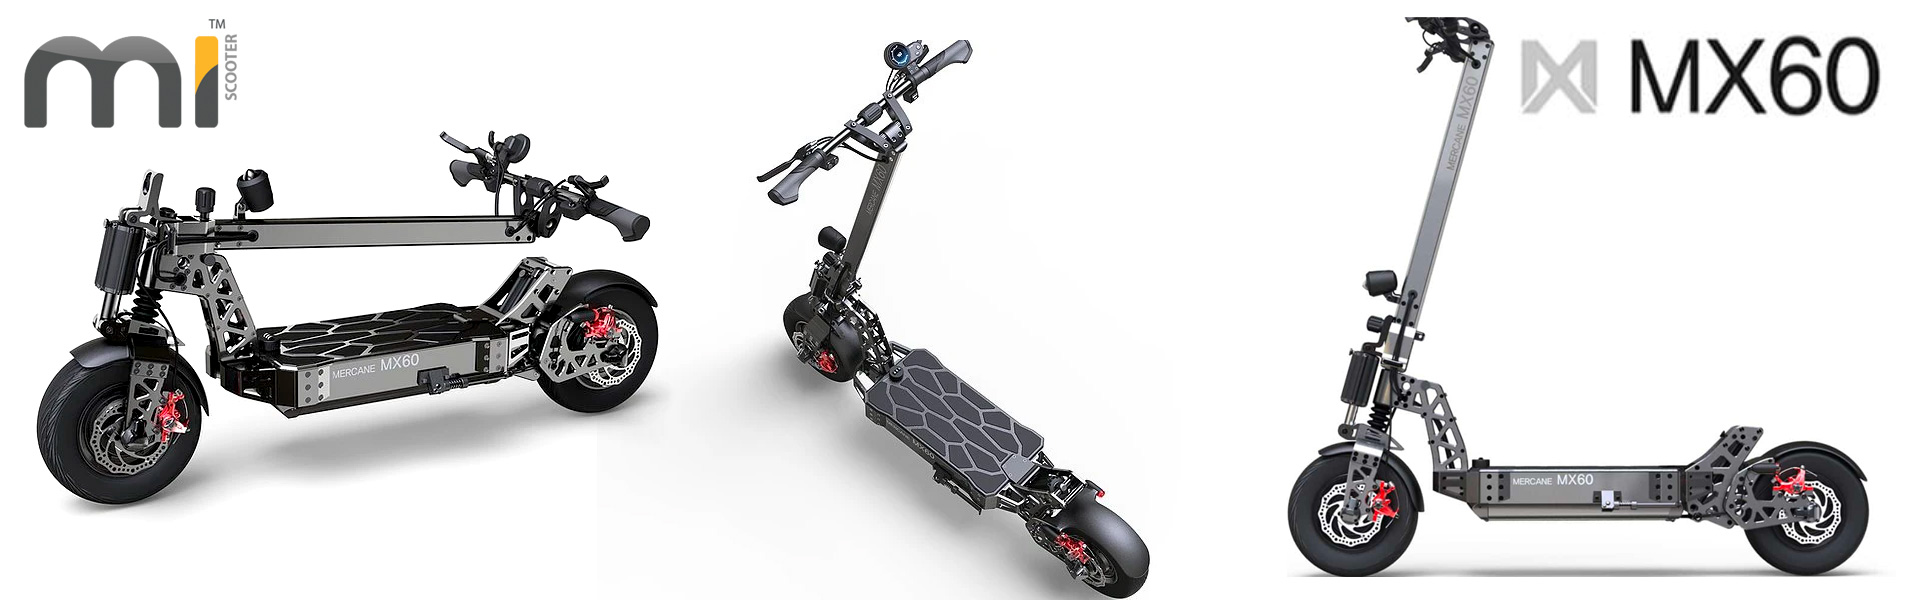 2020 New Mercane MX60 Smart Electric Scooter 2400W 60km/h